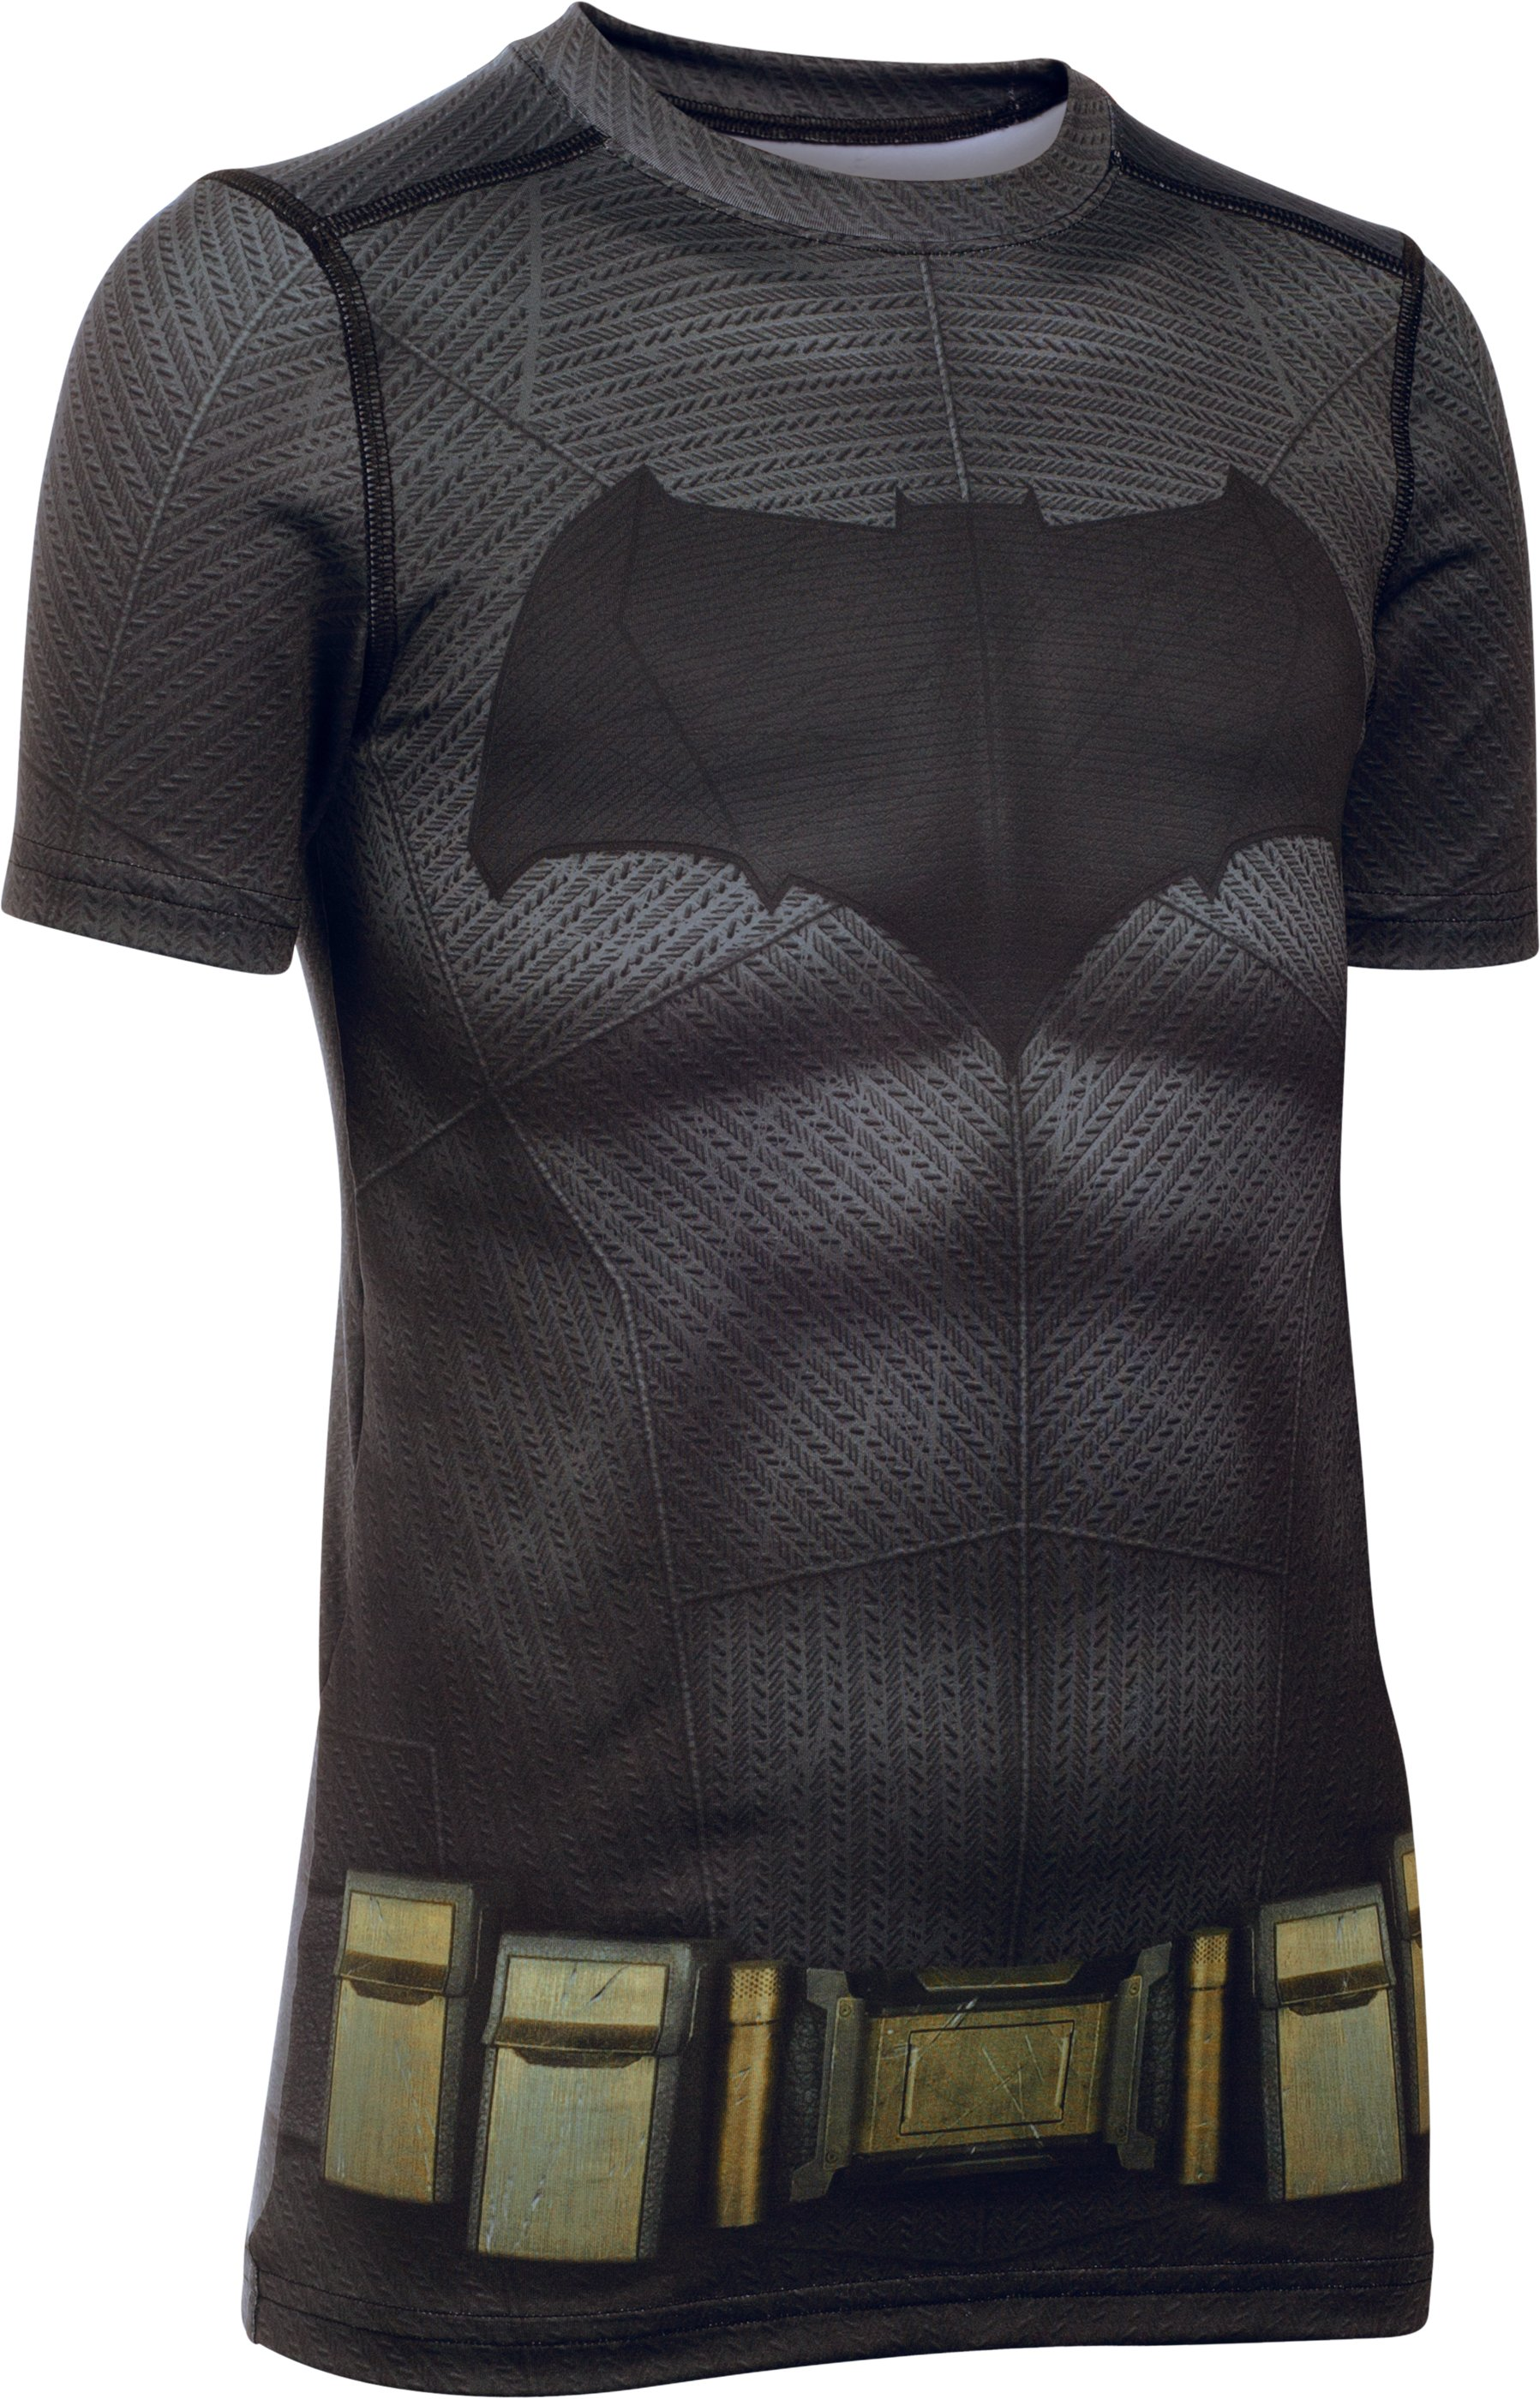 Boys' Under Armour® Alter Ego Batman Fitted Shirt, Graphite